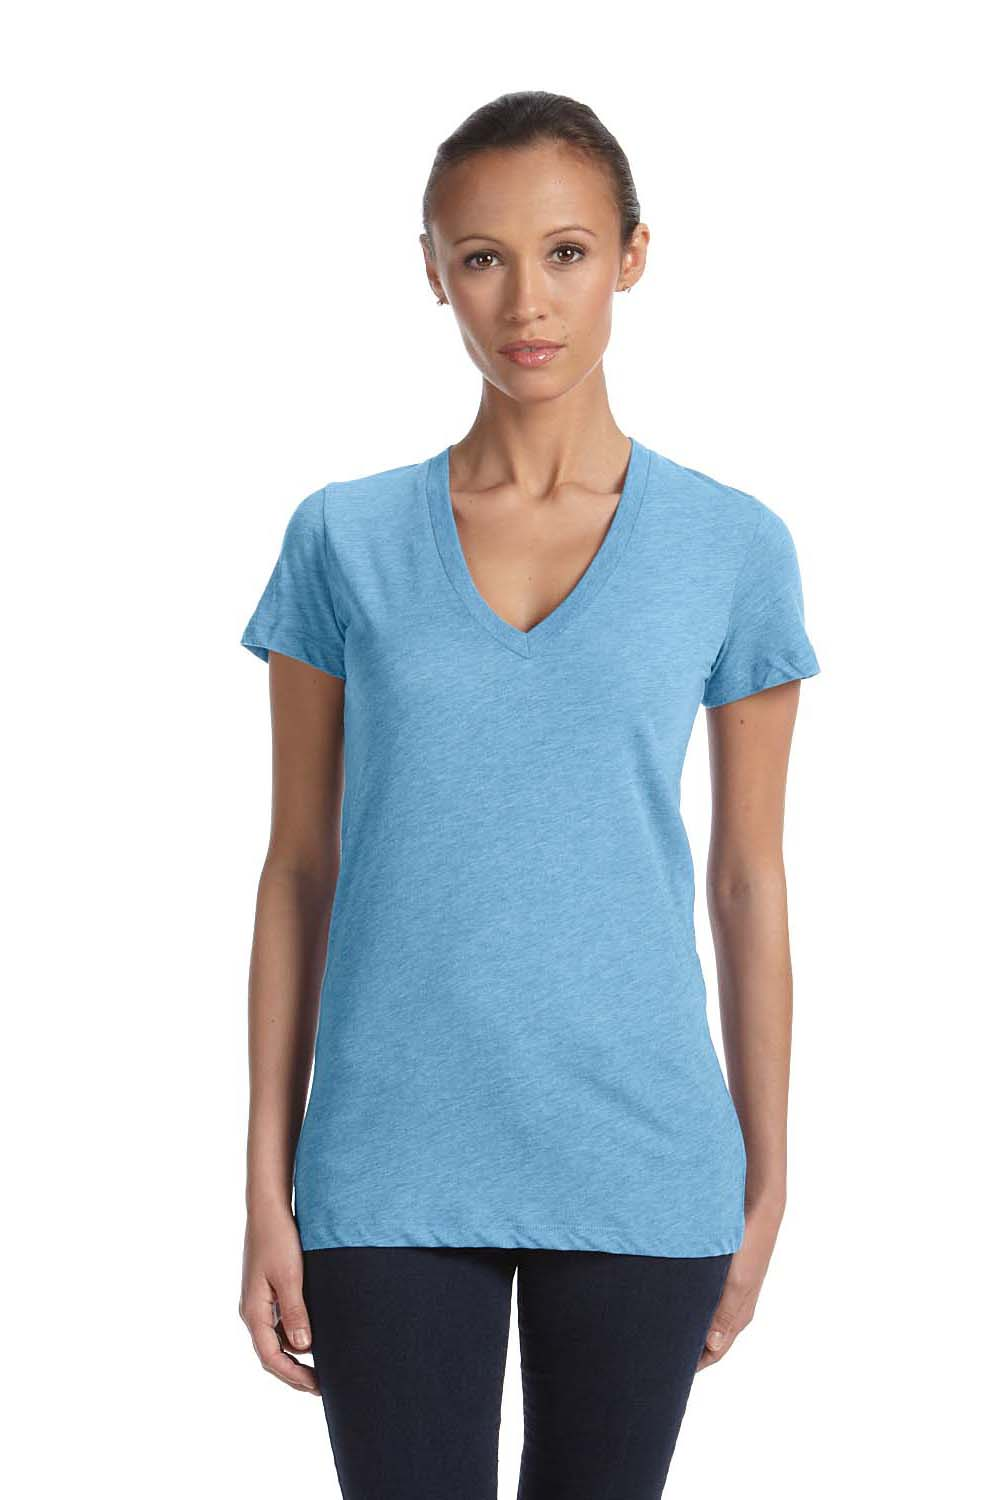 Bella + Canvas 8435 Womens Short Sleeve Deep V-Neck T-Shirt Athletic Blue Front